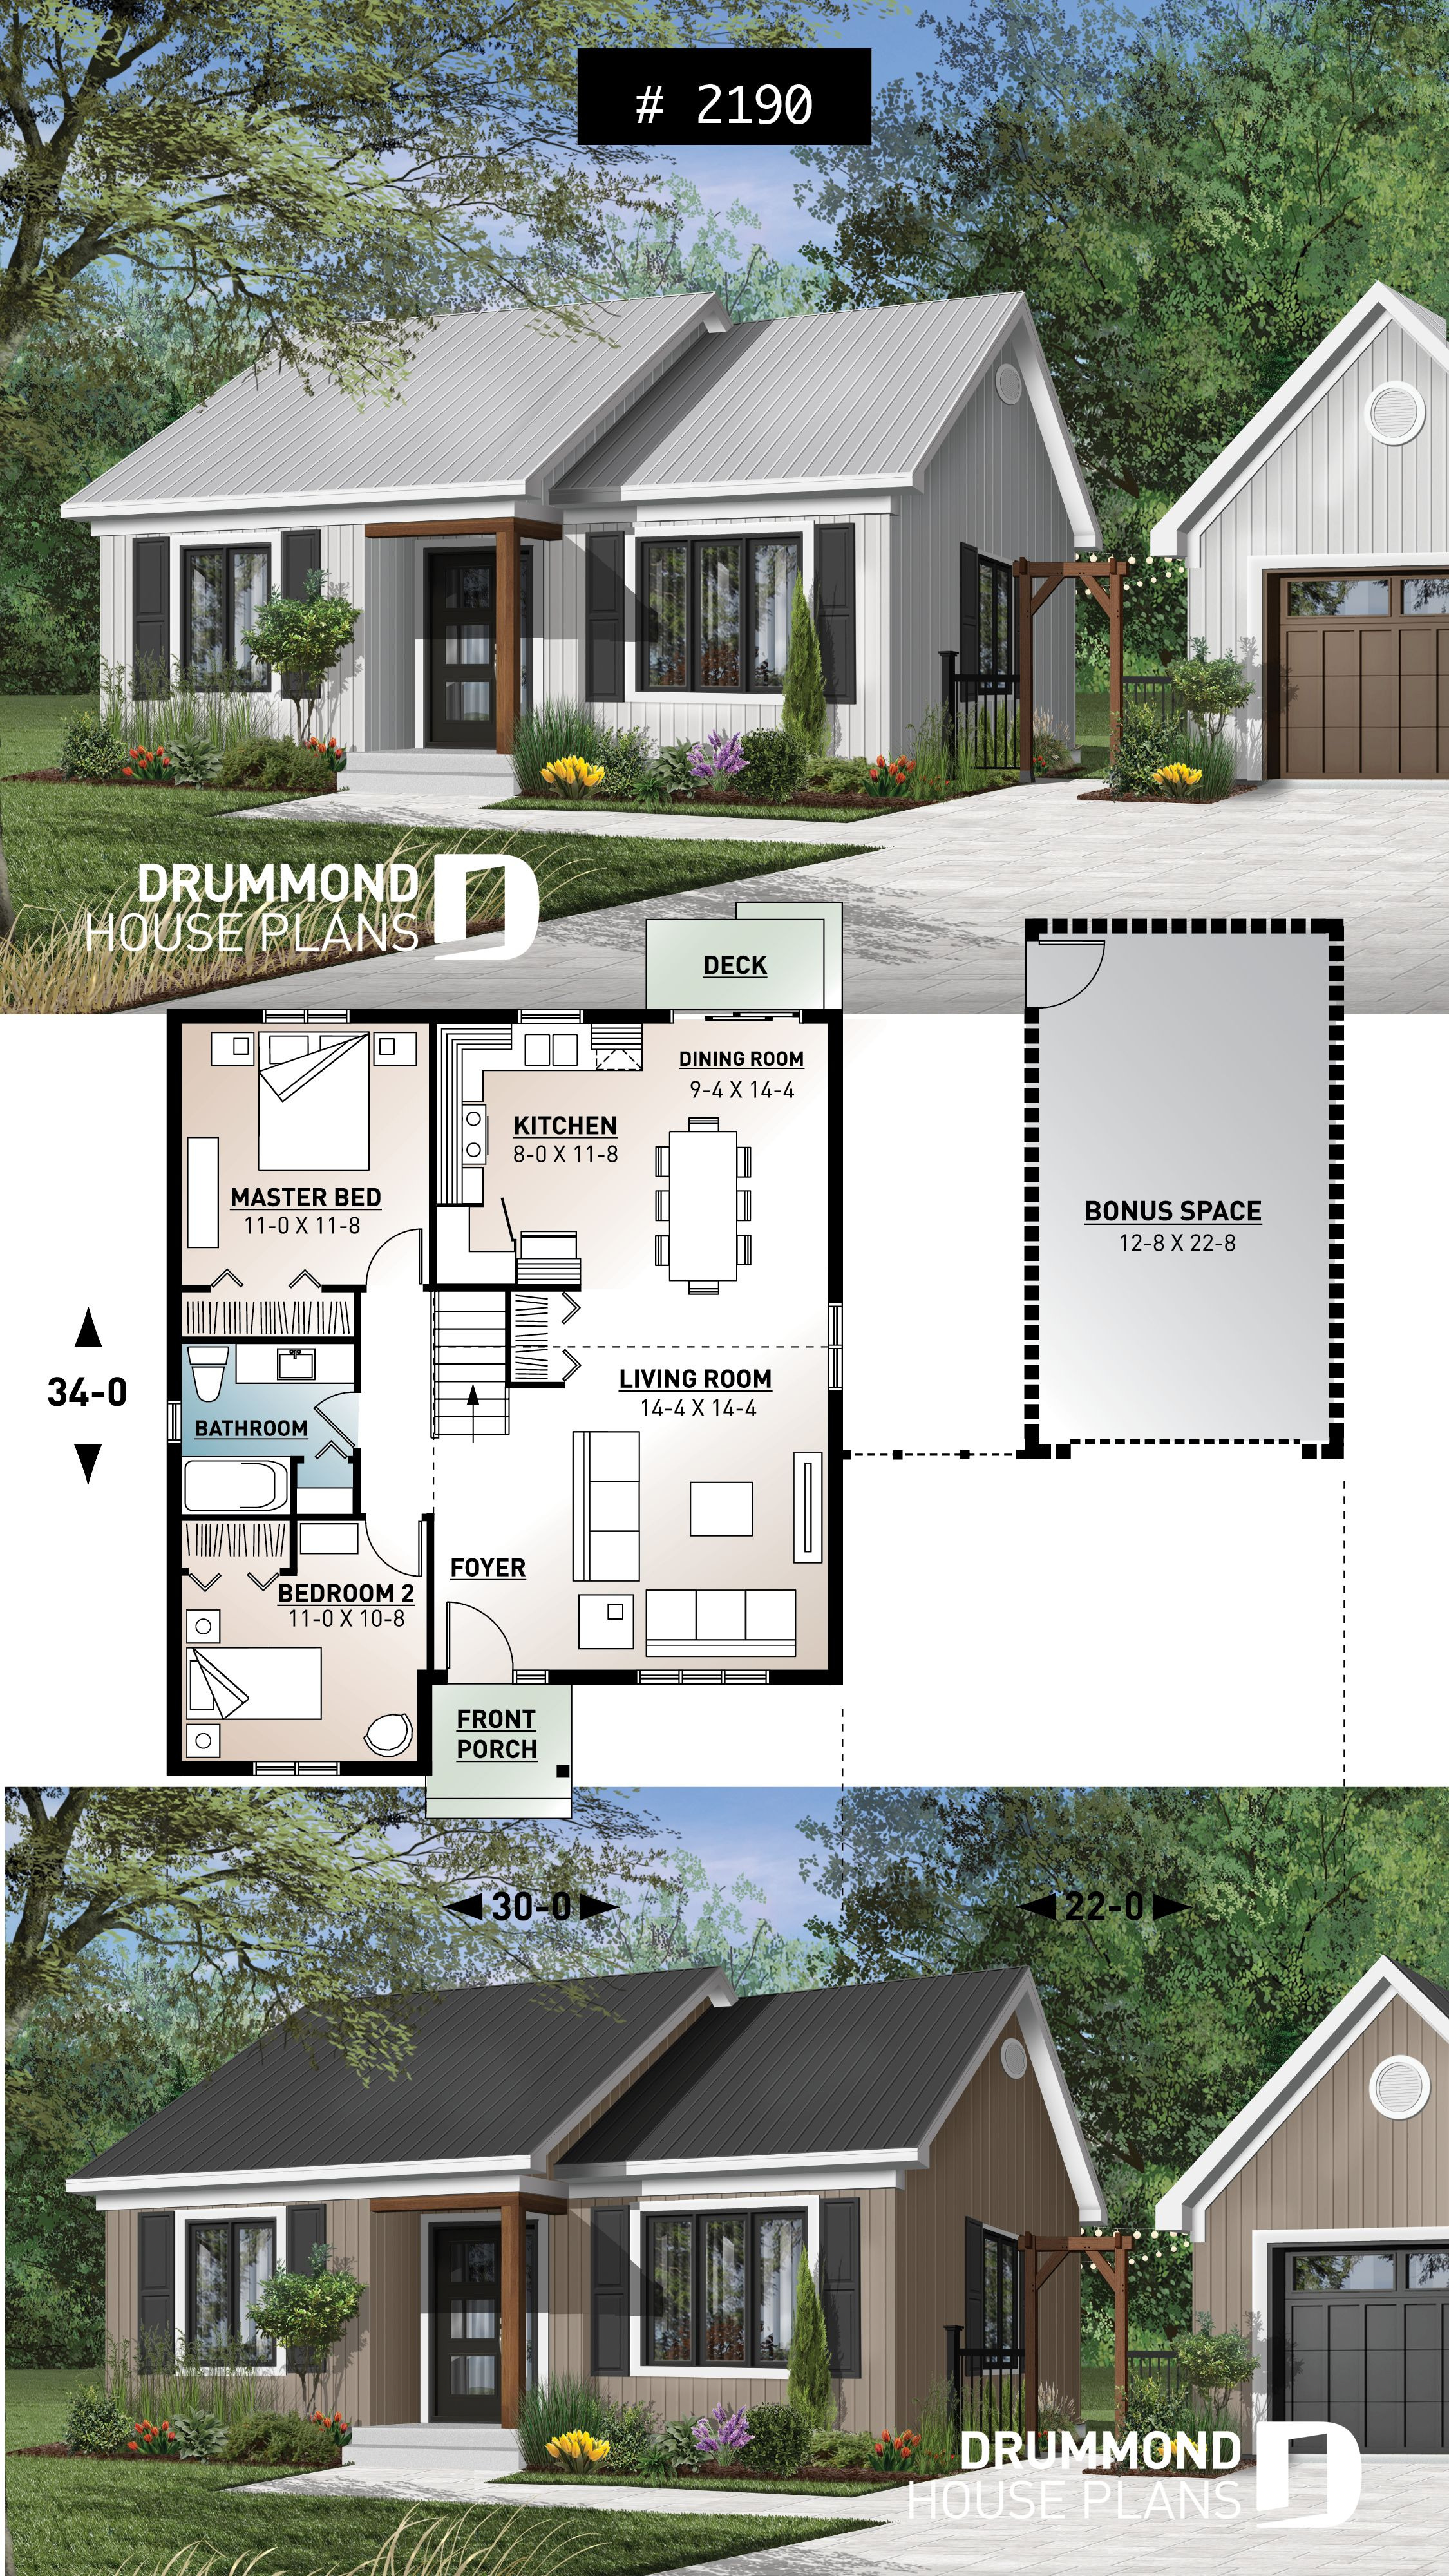 Cost Of House Plans Inspirational House Plan St Laurent No 2190